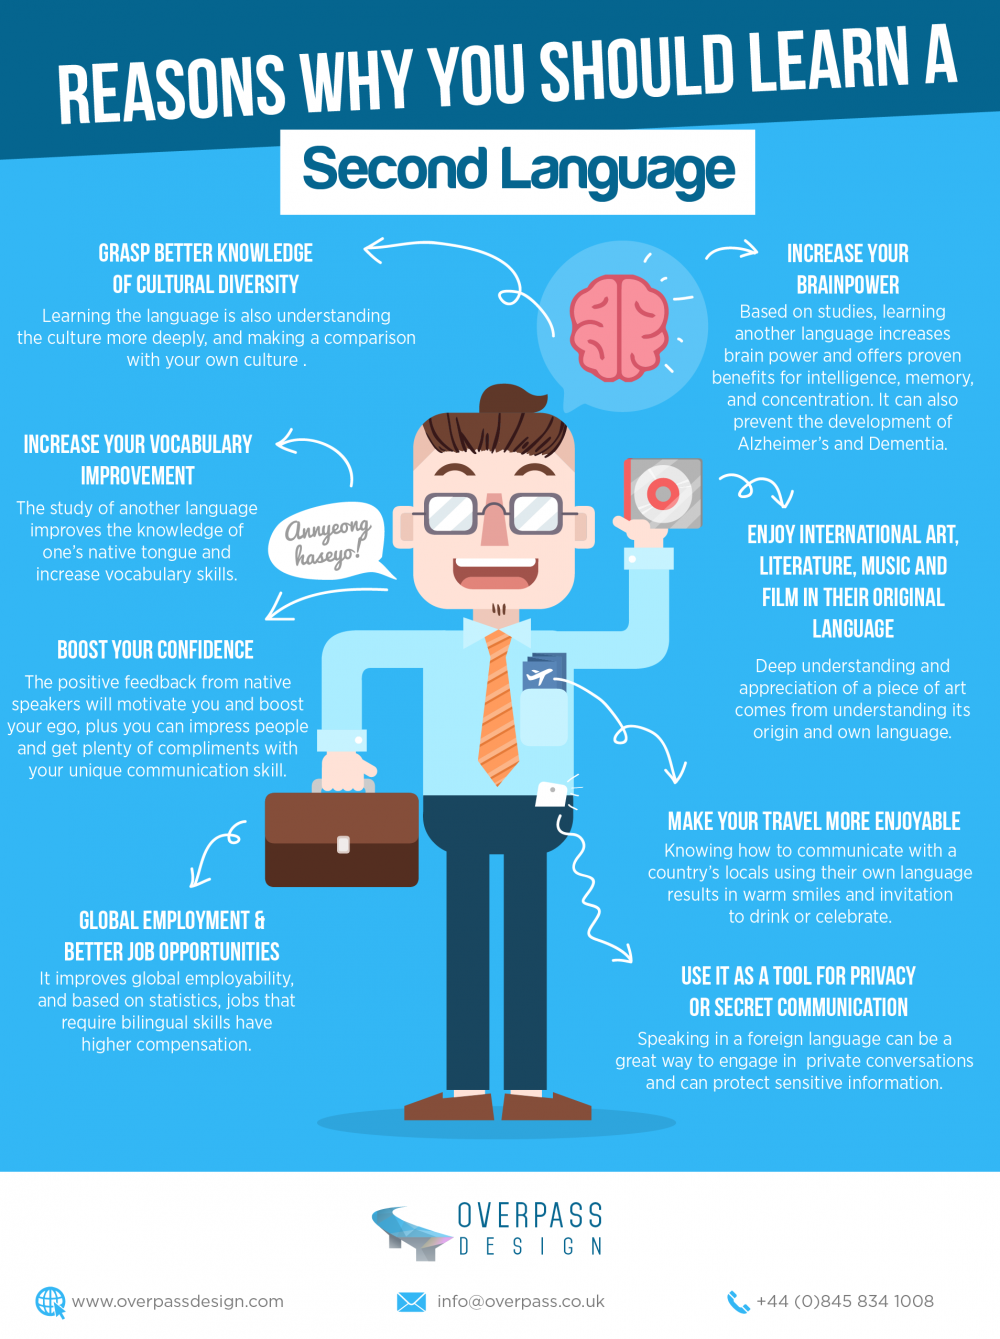 Learning a second language has many benefits including increased brainpower, and the pleasure of conversing with locals in their native tongue when you're travelling.  It has numerous benefits in the world of business, opening doors and allowing you to operate on a much bigger scale.  But what other benefits are there and why should you seriously consider learning a second language?  The following infographic by Overpass highlights 8 reasons why you need to learn a second language. The reasons are many and varied and if you have always thought of learning a new language, but keep putting it off, maybe now's the right to to start looking into it more seriously?  If so, don't forget to check out our article which features 35 Free University Resources to Learn a New Language.